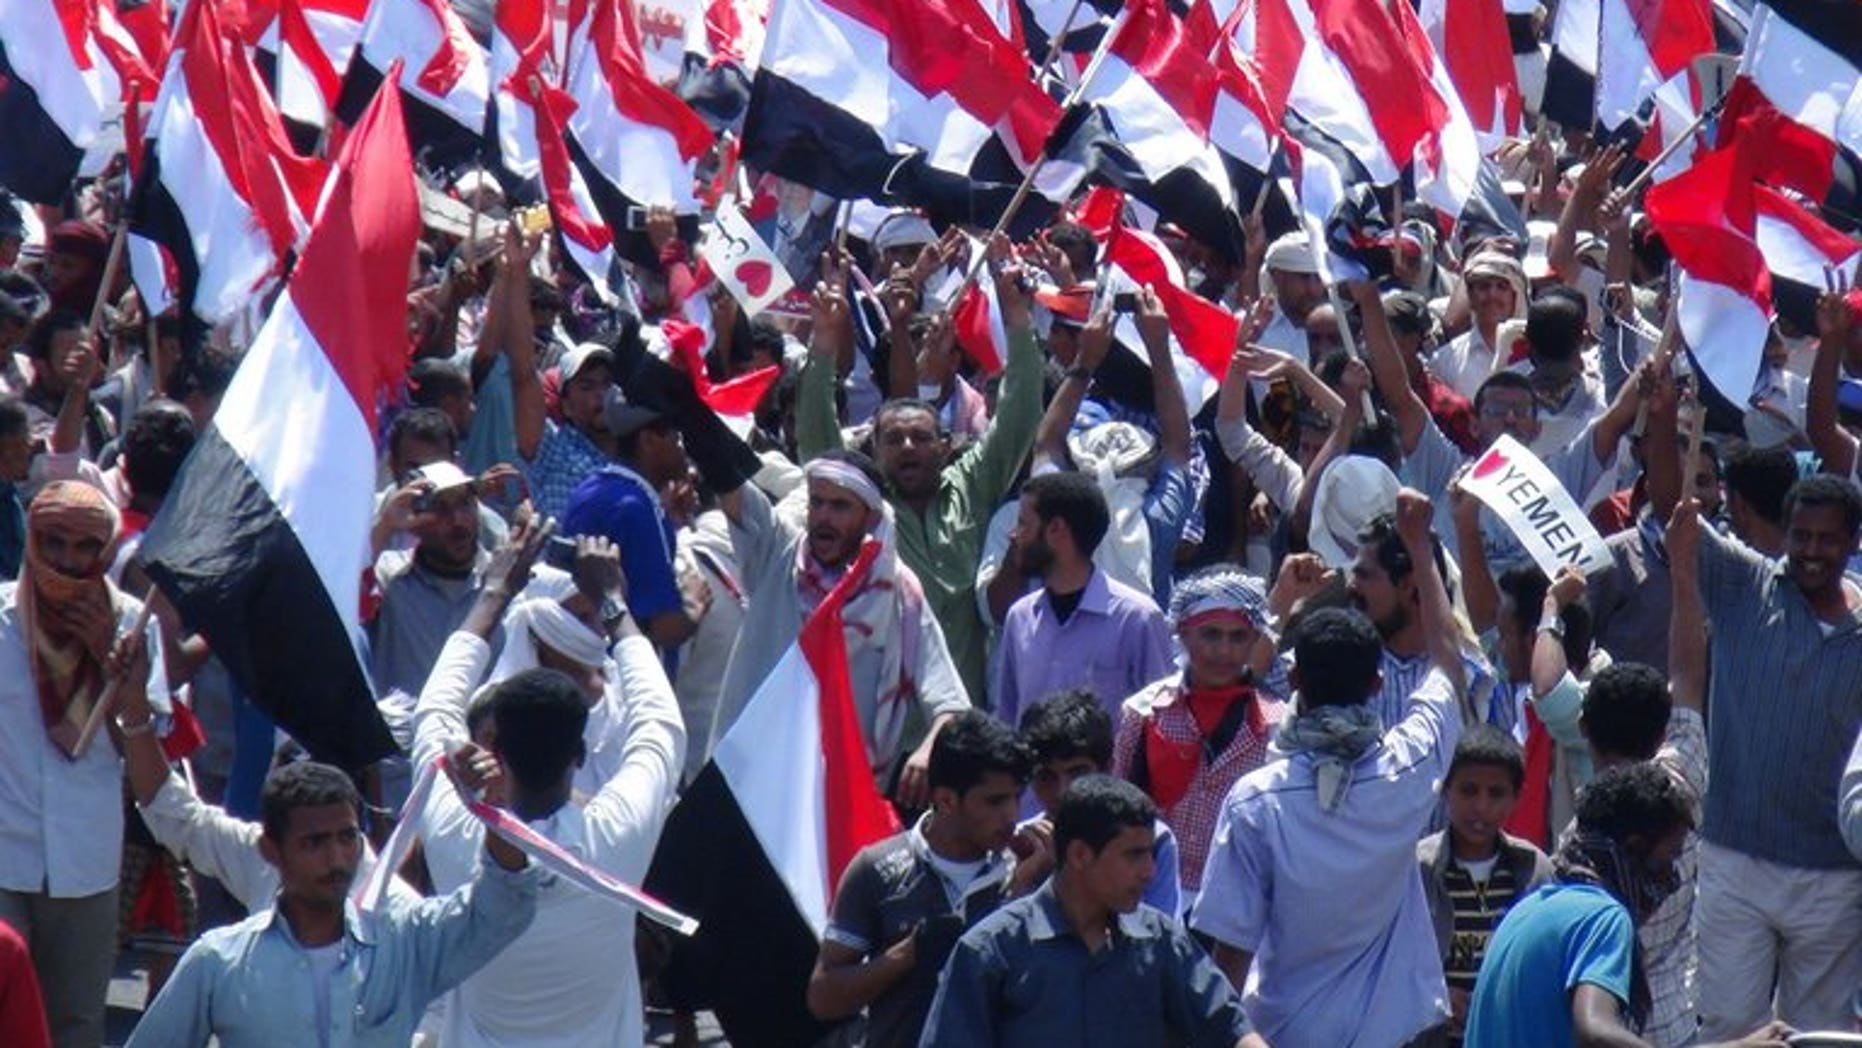 Yemeni protesters call for southern independence during a demonstration on February 21, 2013. Thousands of people rallied in south Yemen on Sunday's 19th anniversary of the civil war that was won by the north to demand secession for the south.